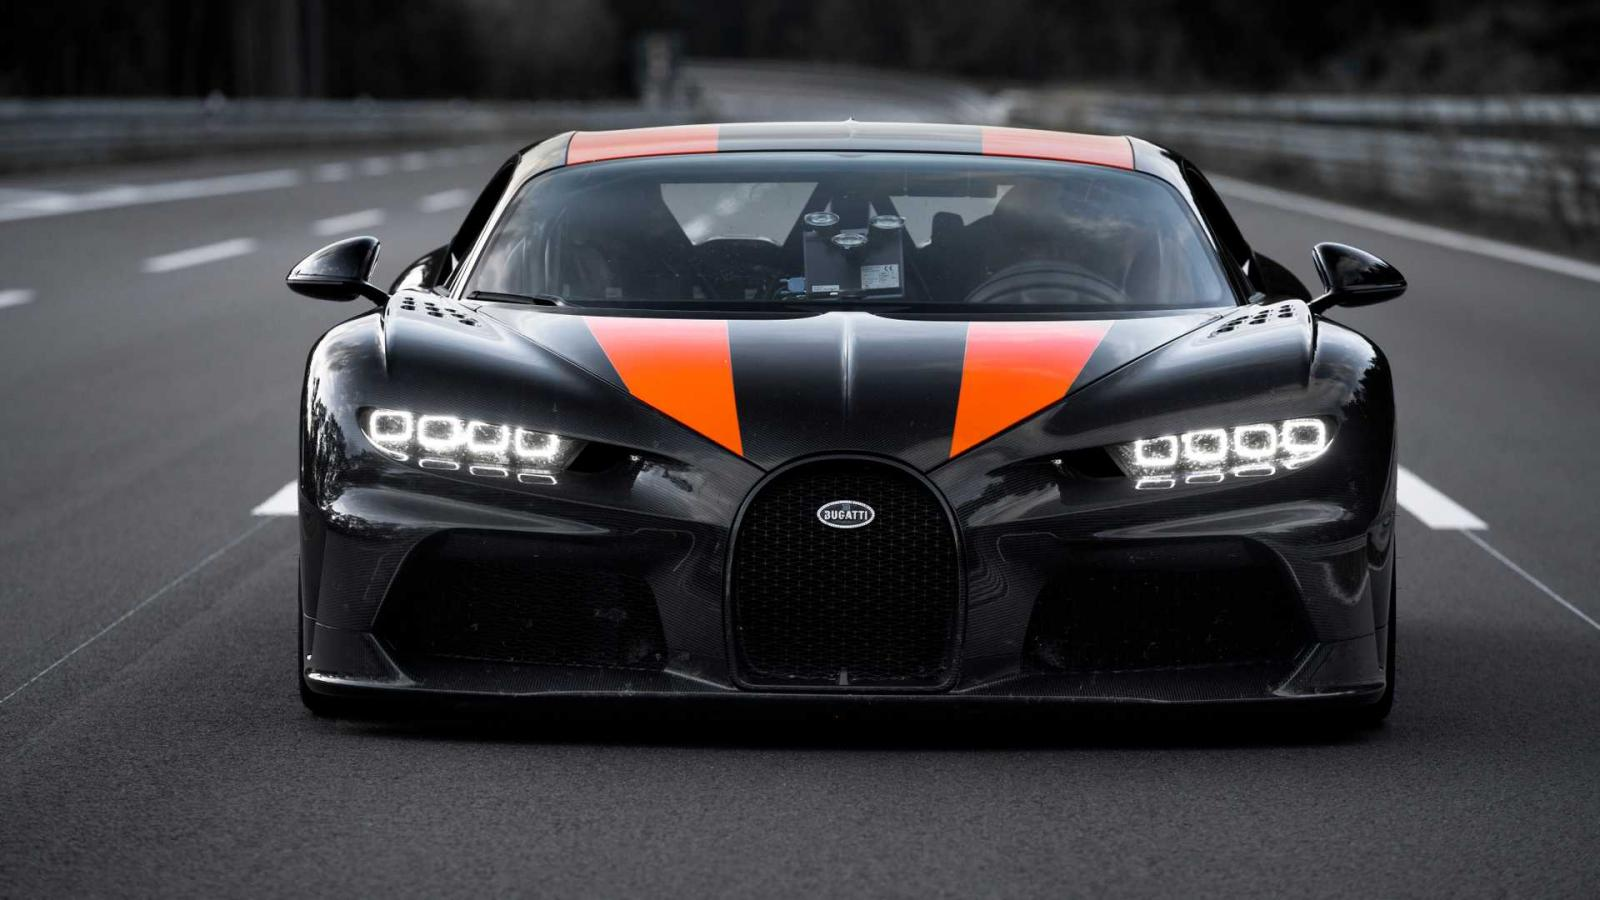 Bugatti has set a new world speed record for production cars. To achieve this, a Chiron hypercar was slightly tweaked by Dallara.